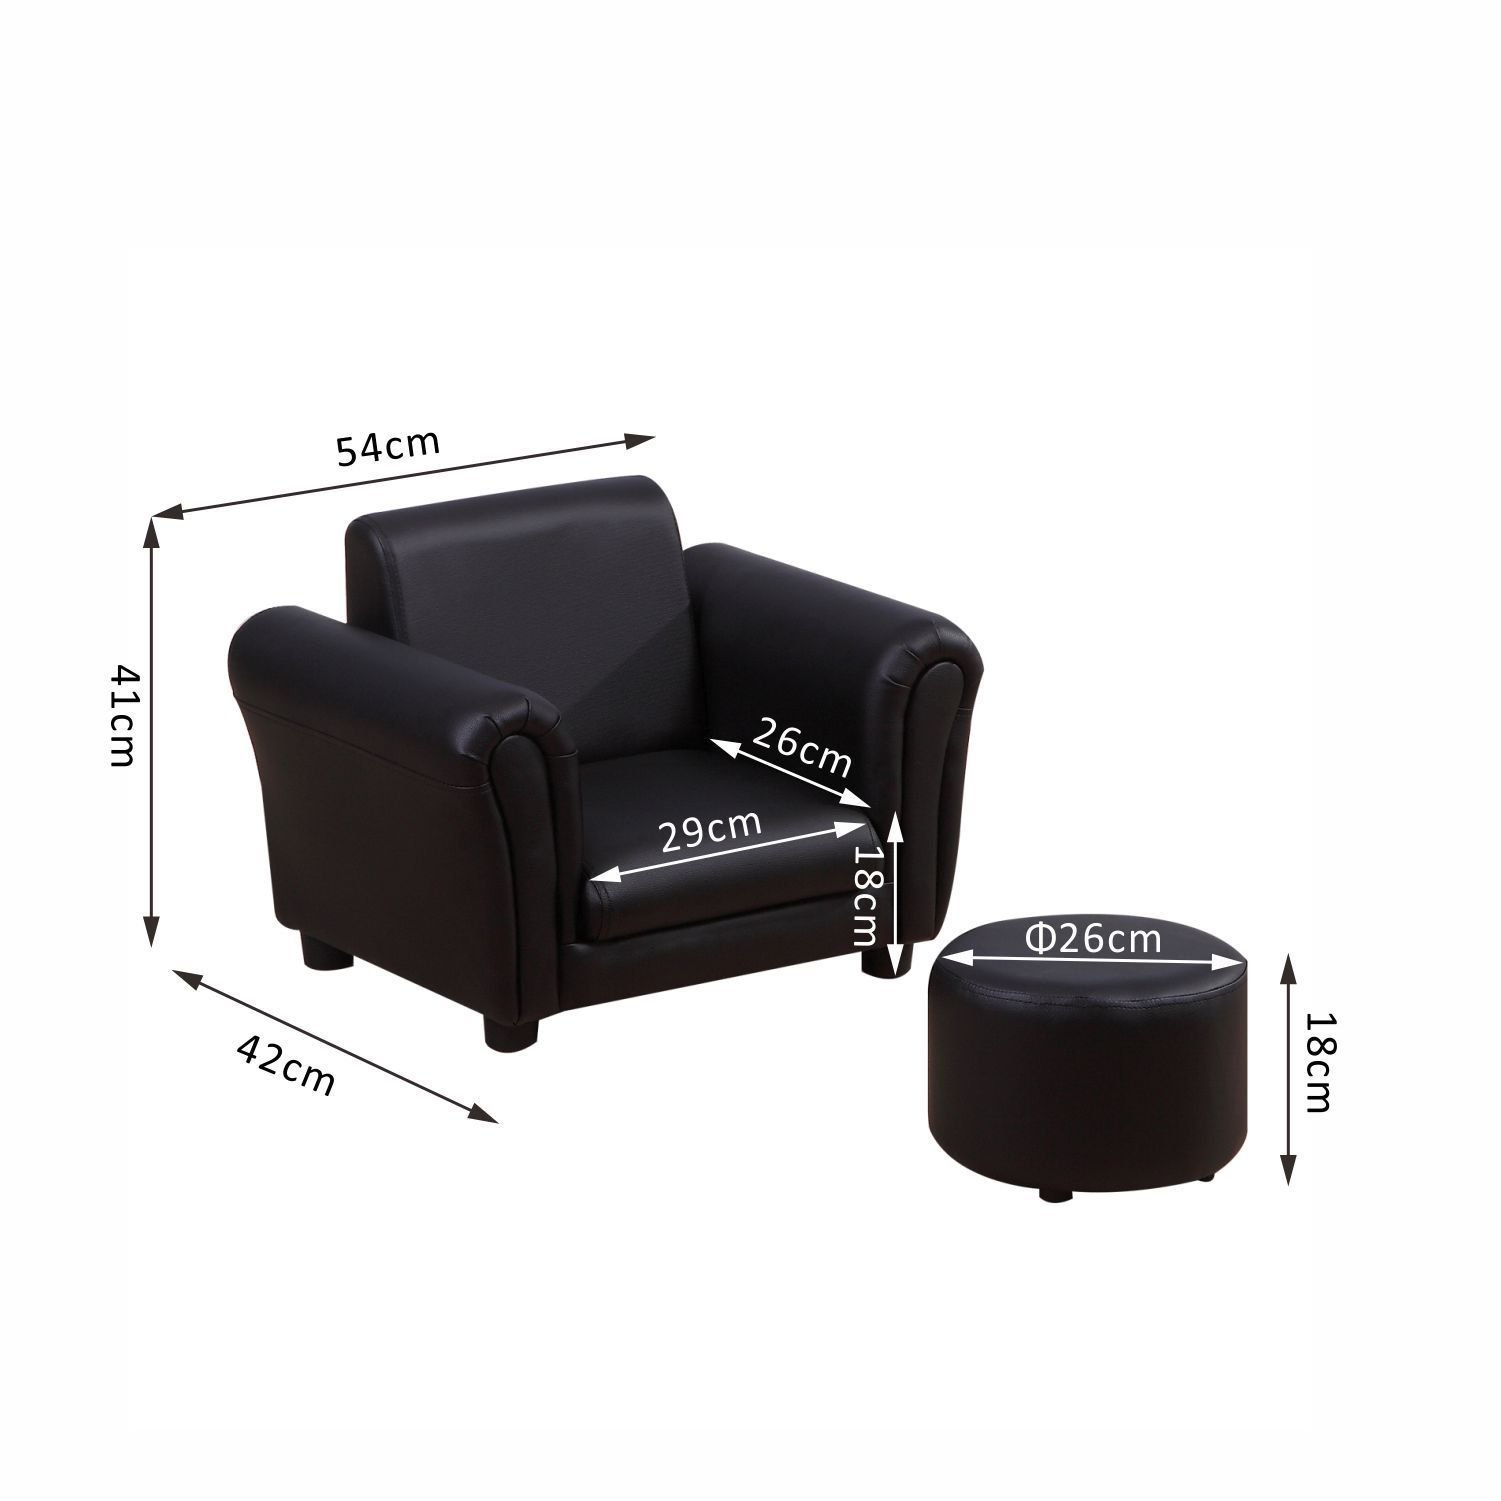 Kids-Sofa-Children-Chair-Seat-Armchair-W-Footstool-Playroom-Bedroom-Black-Pink thumbnail 3